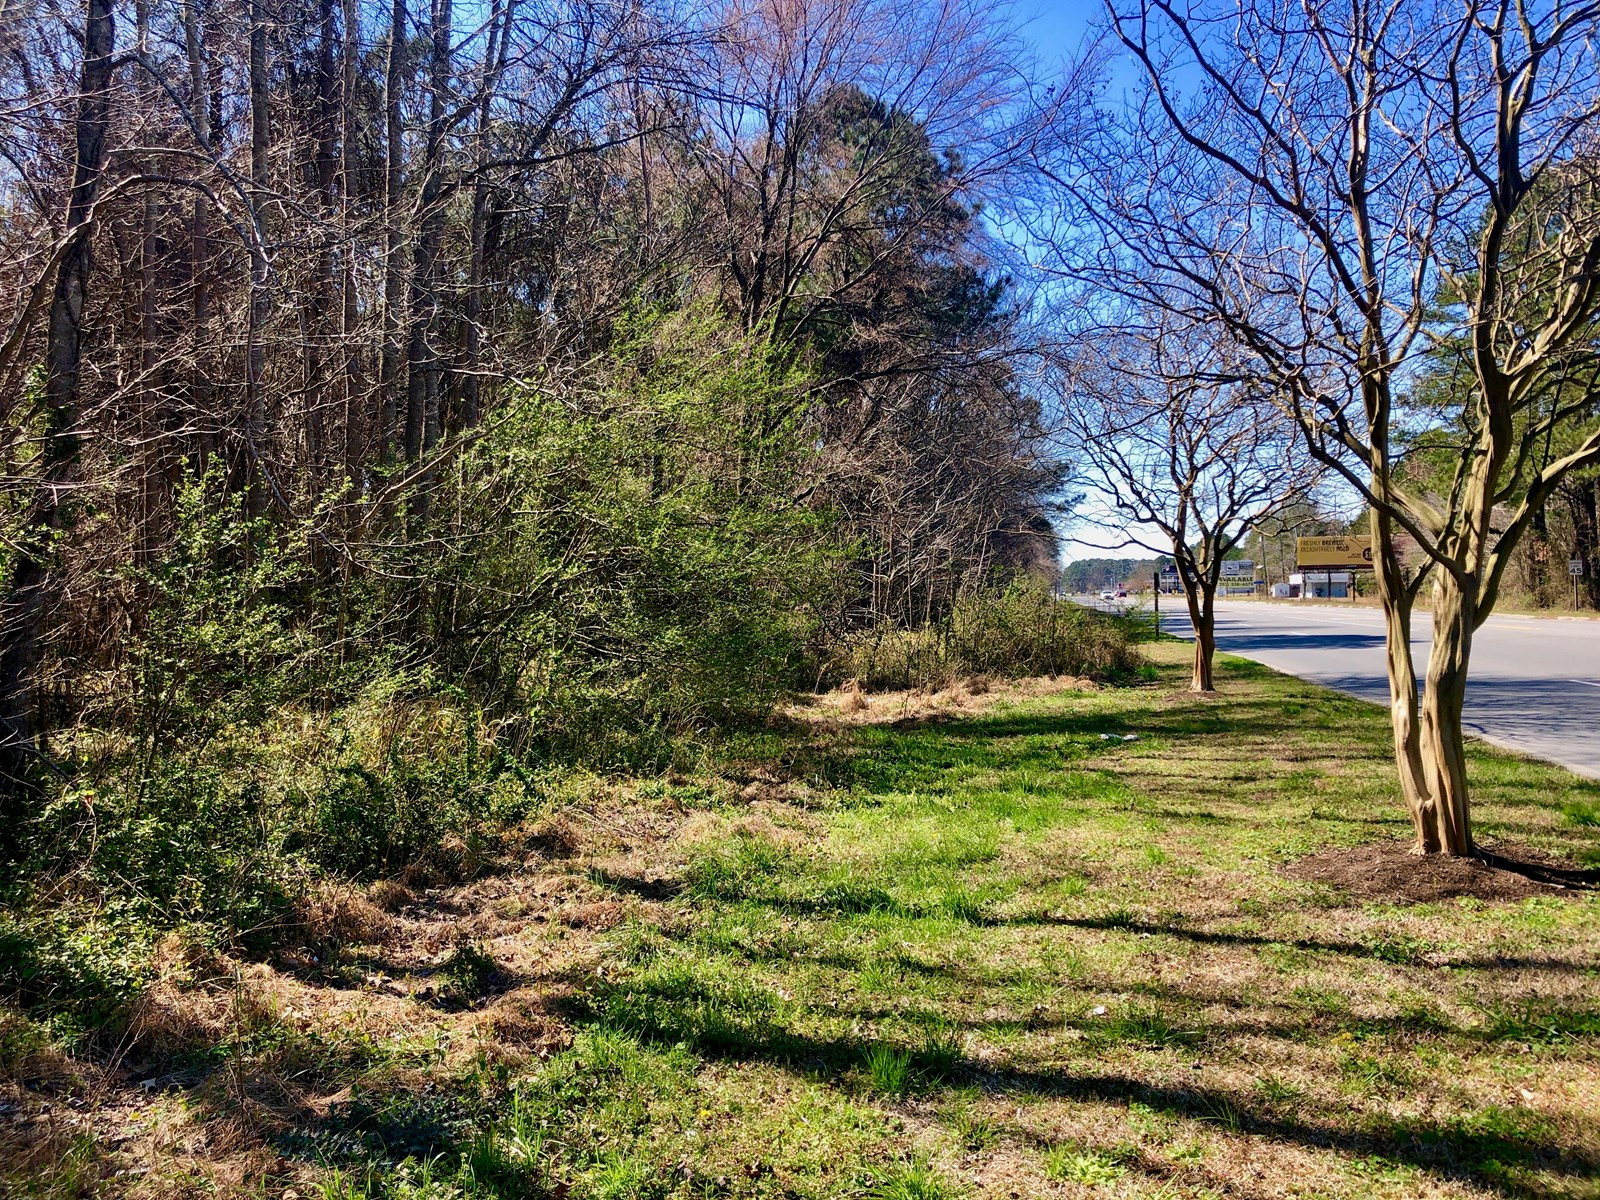 Commercial Property For Sale In Plymouth NC